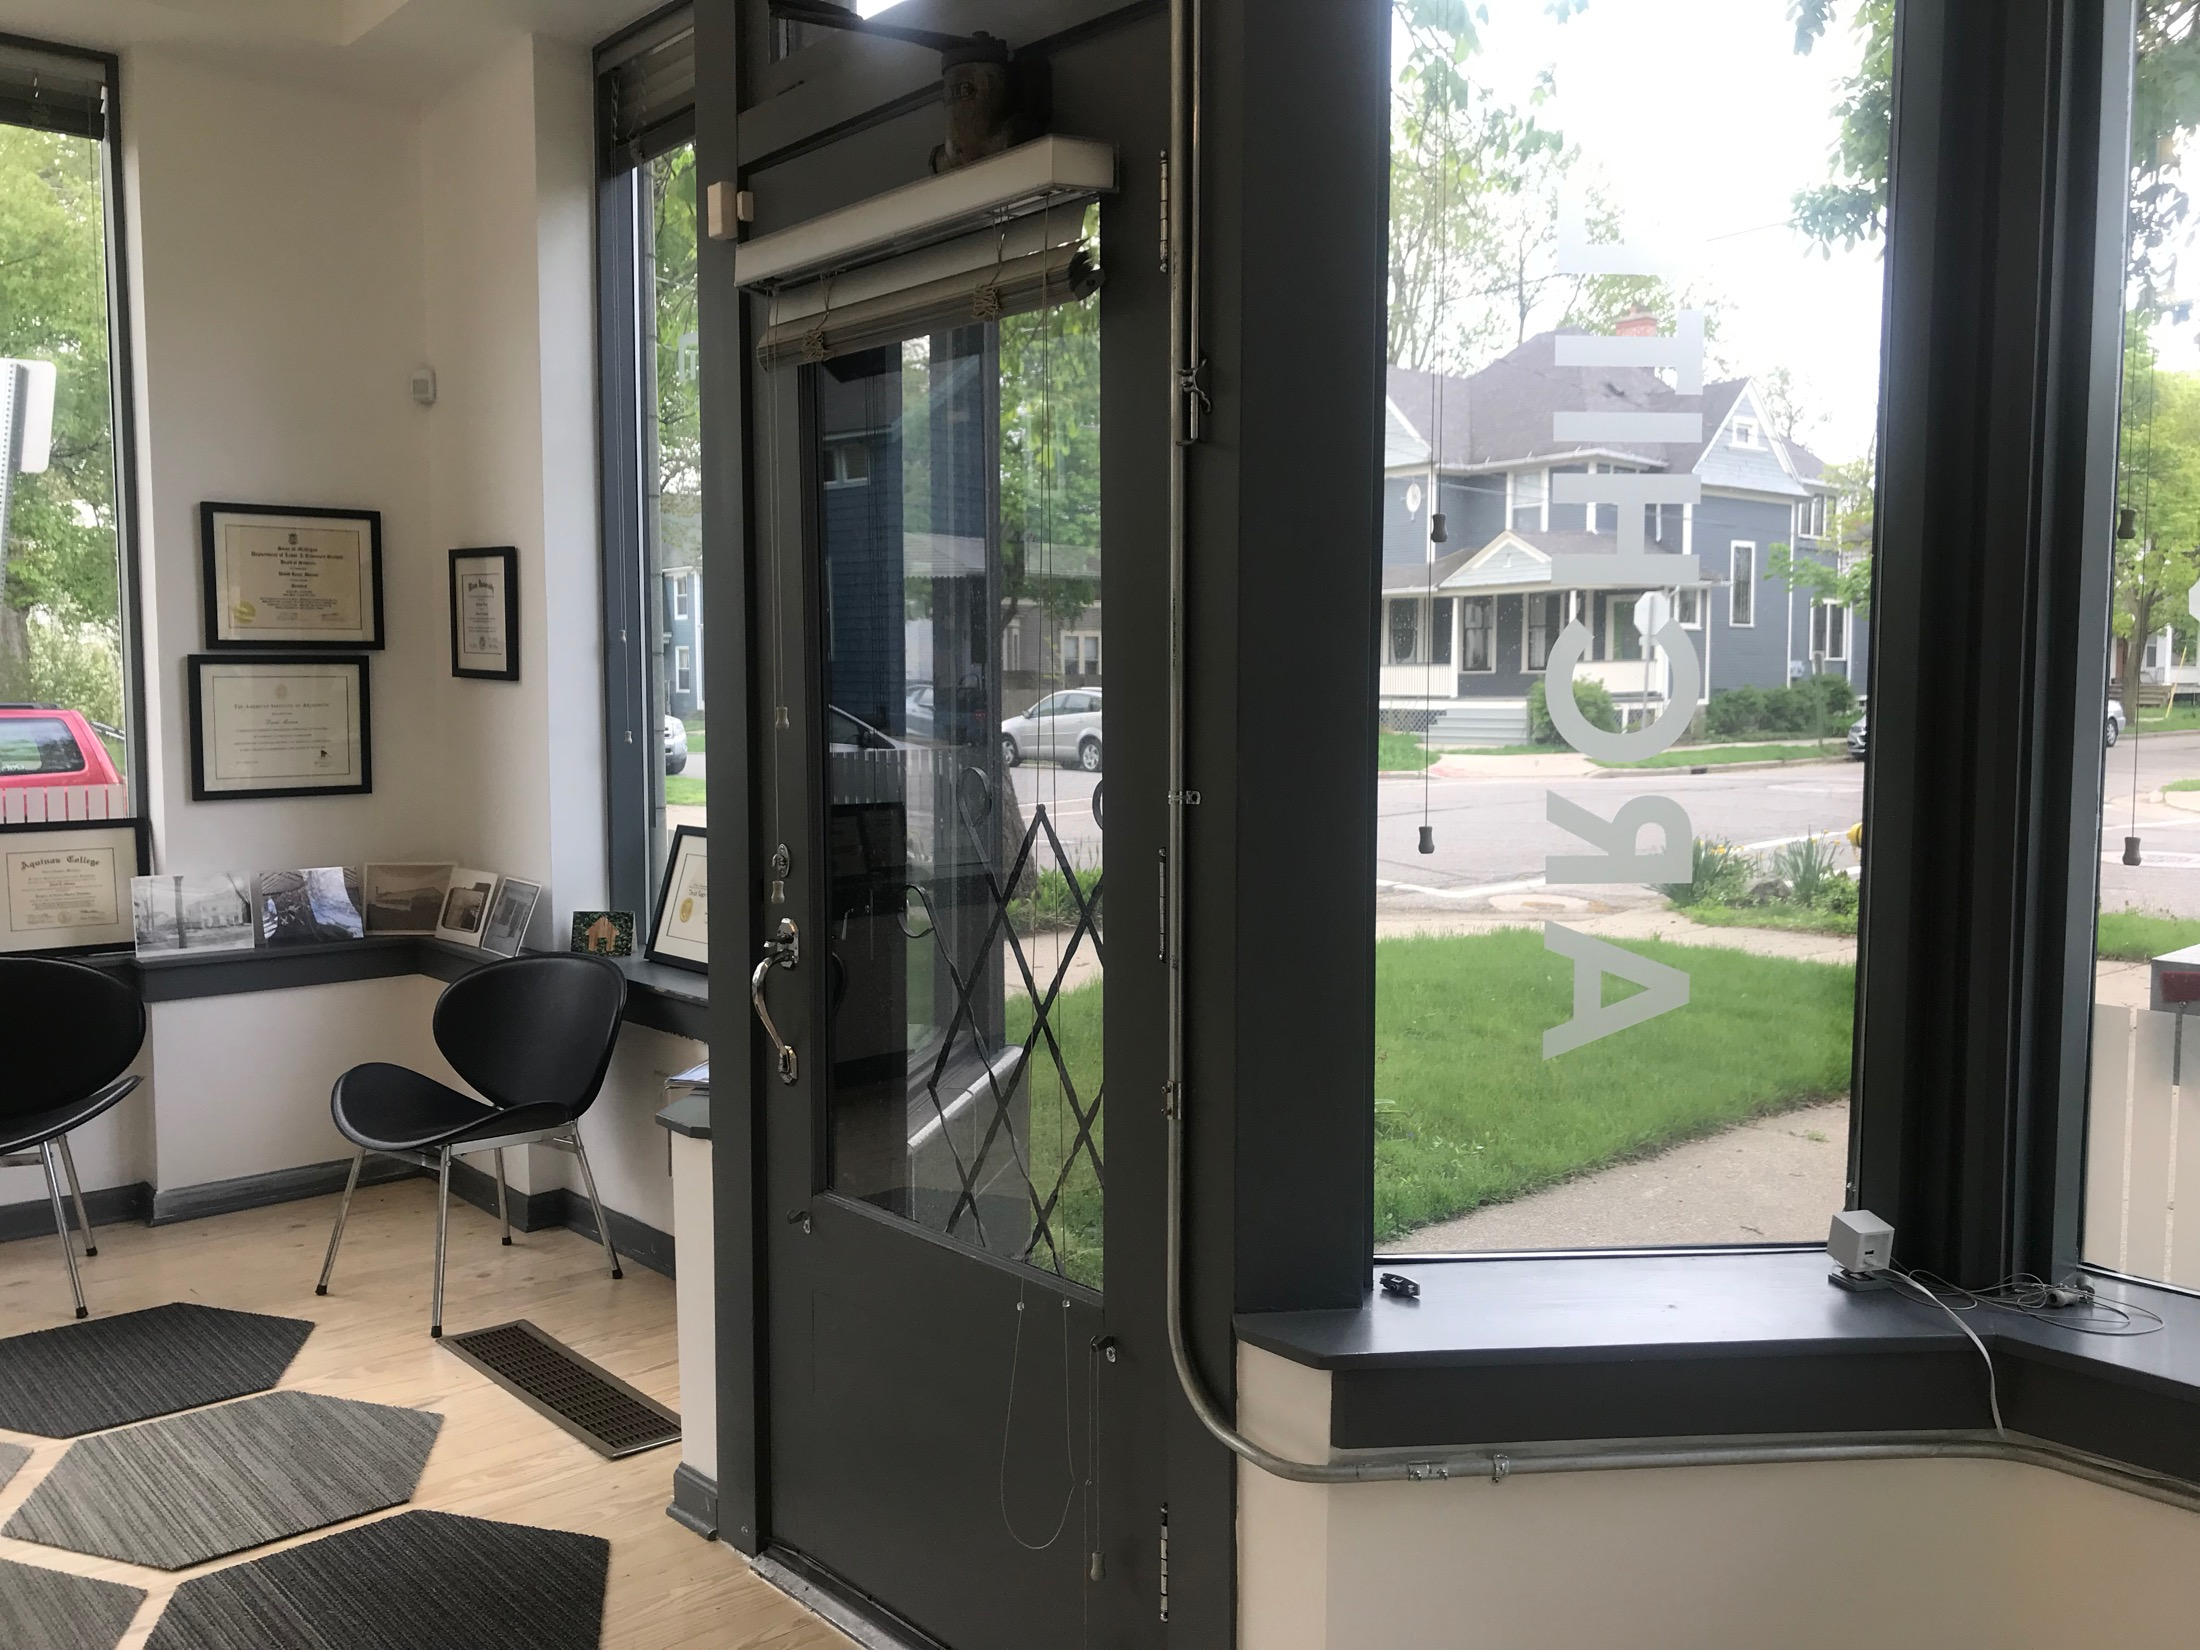 Entry and exterior trim painted contrasting black